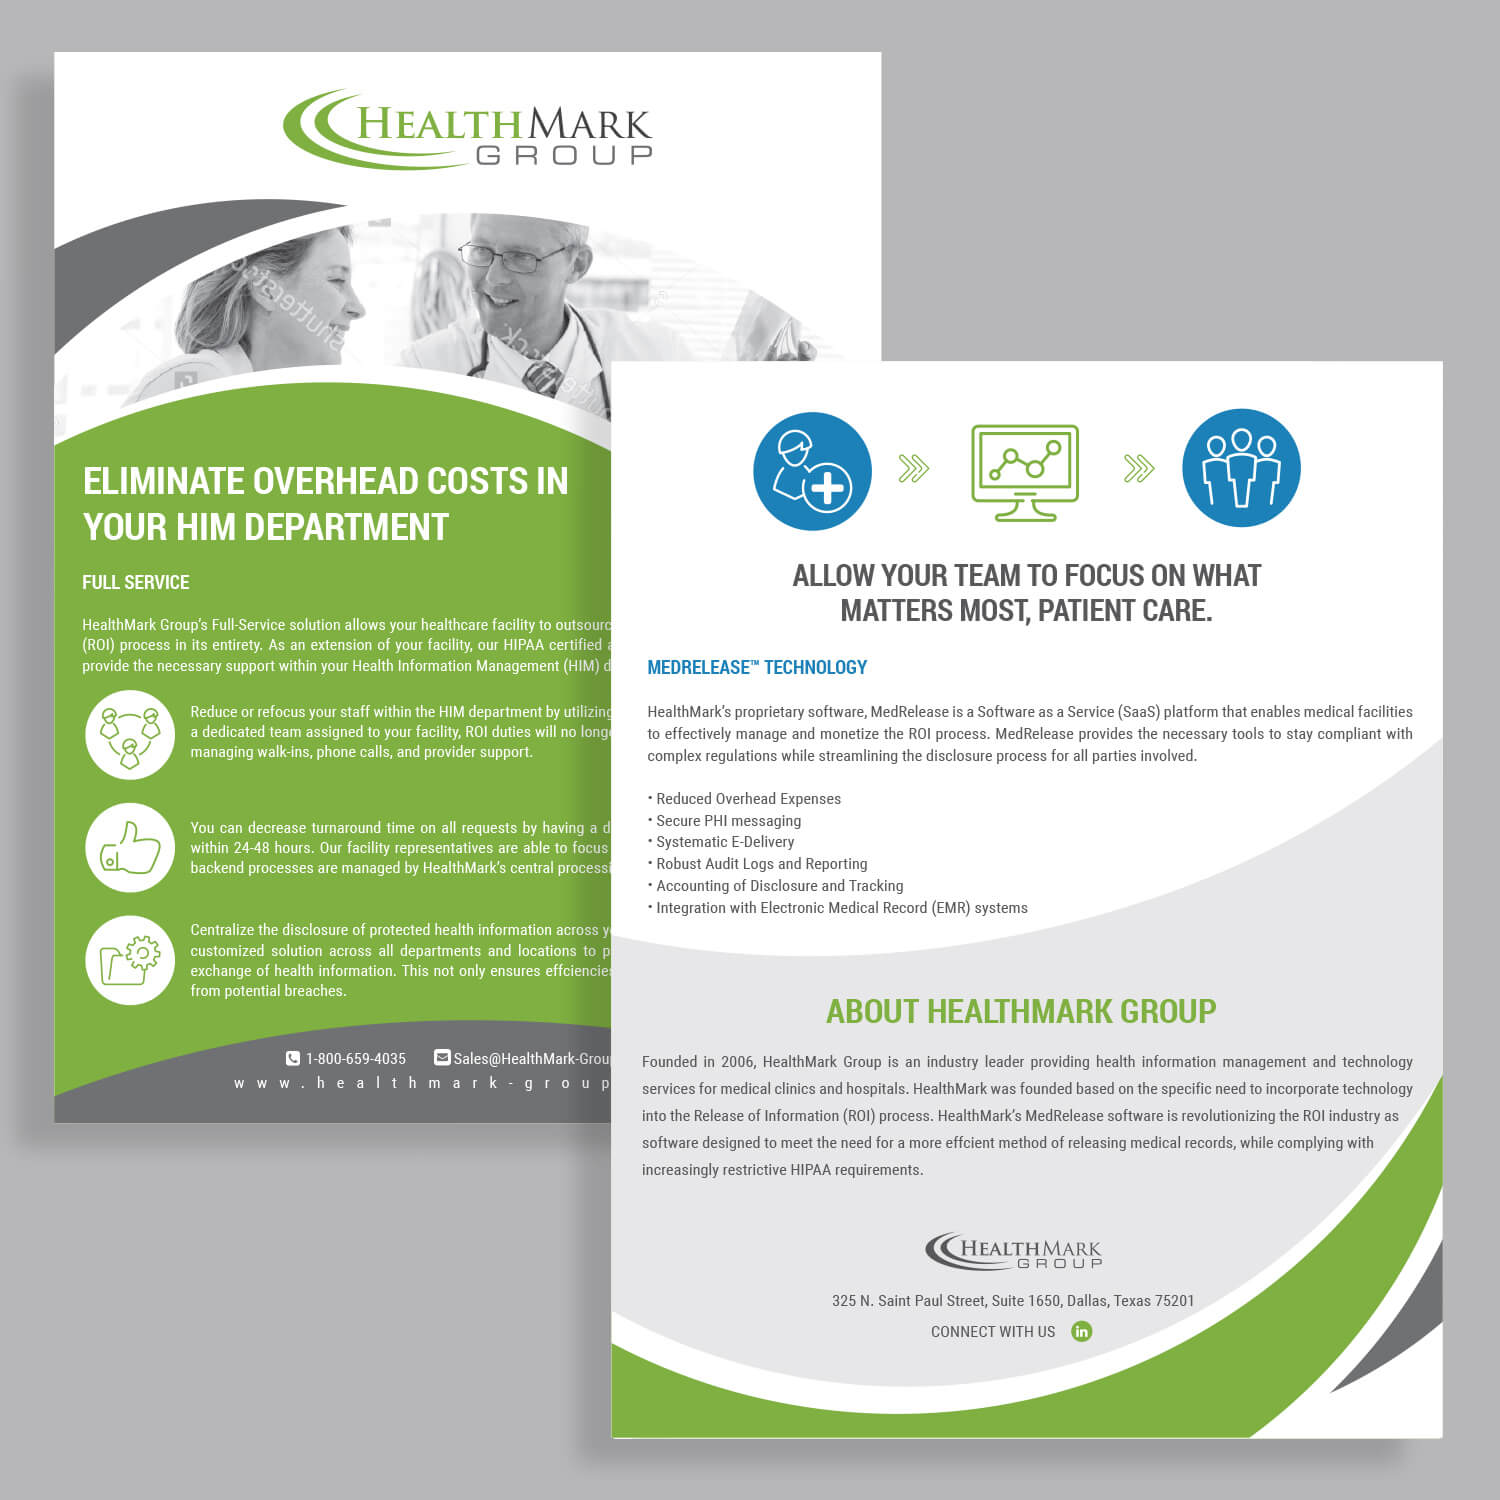 005 One Page Brochure Template Ideas 523608 14107804 2612816 Inside One Page Brochure Template